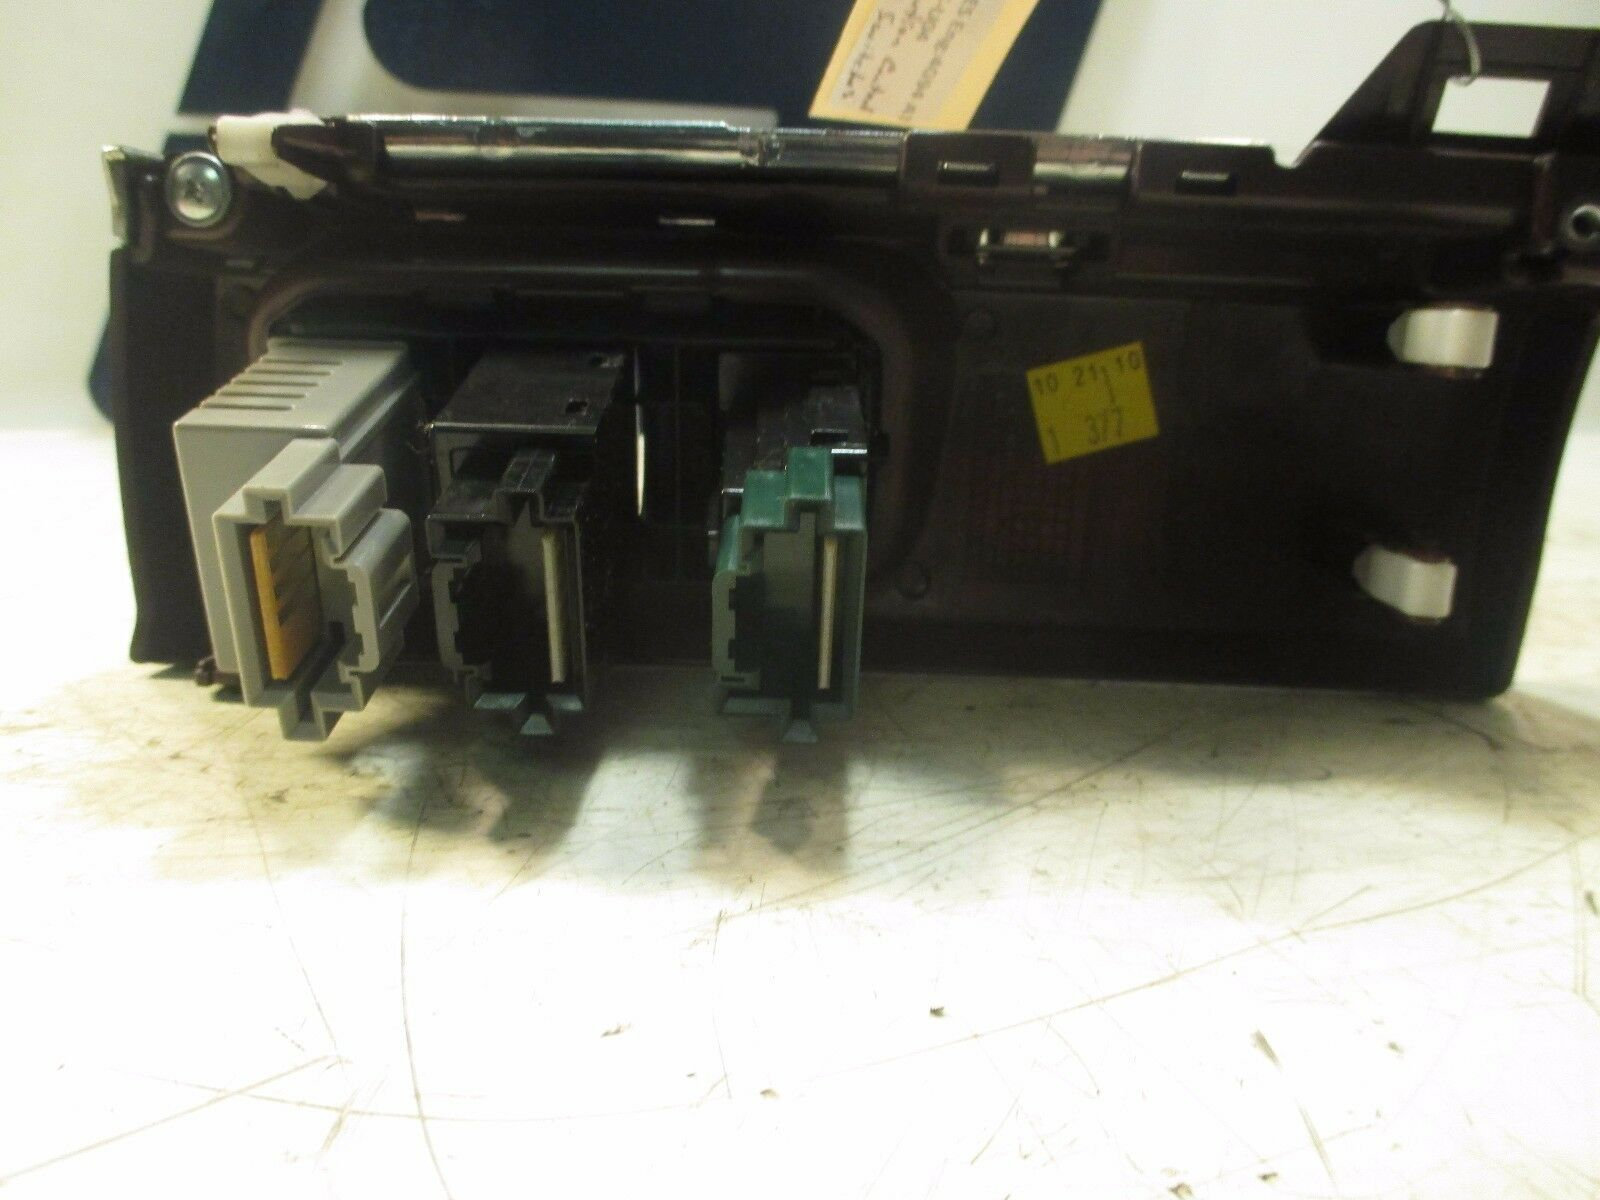 Used 2011 Mitsubishi Galant Interior Parts For Sale Fuse Box Es Dash Fog Light Traction Control Dim Switches Trim